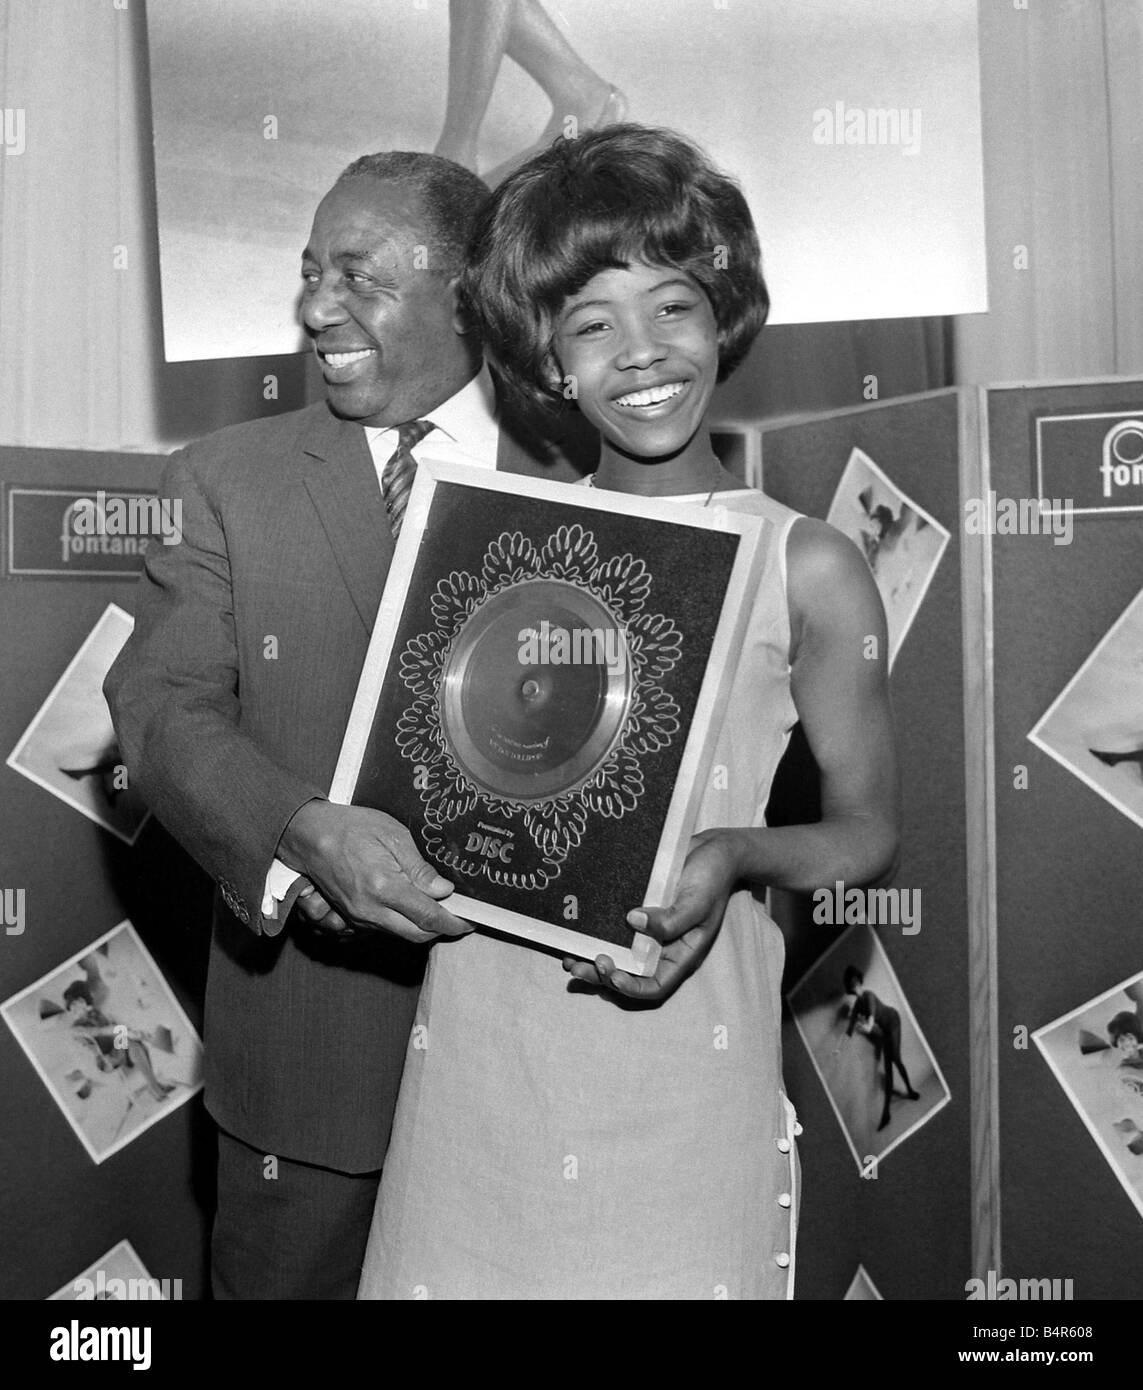 Millie Small Dynamic pop singer of My Boy Lollipop at a reception at Fontana Records where she received her silver - Stock Image